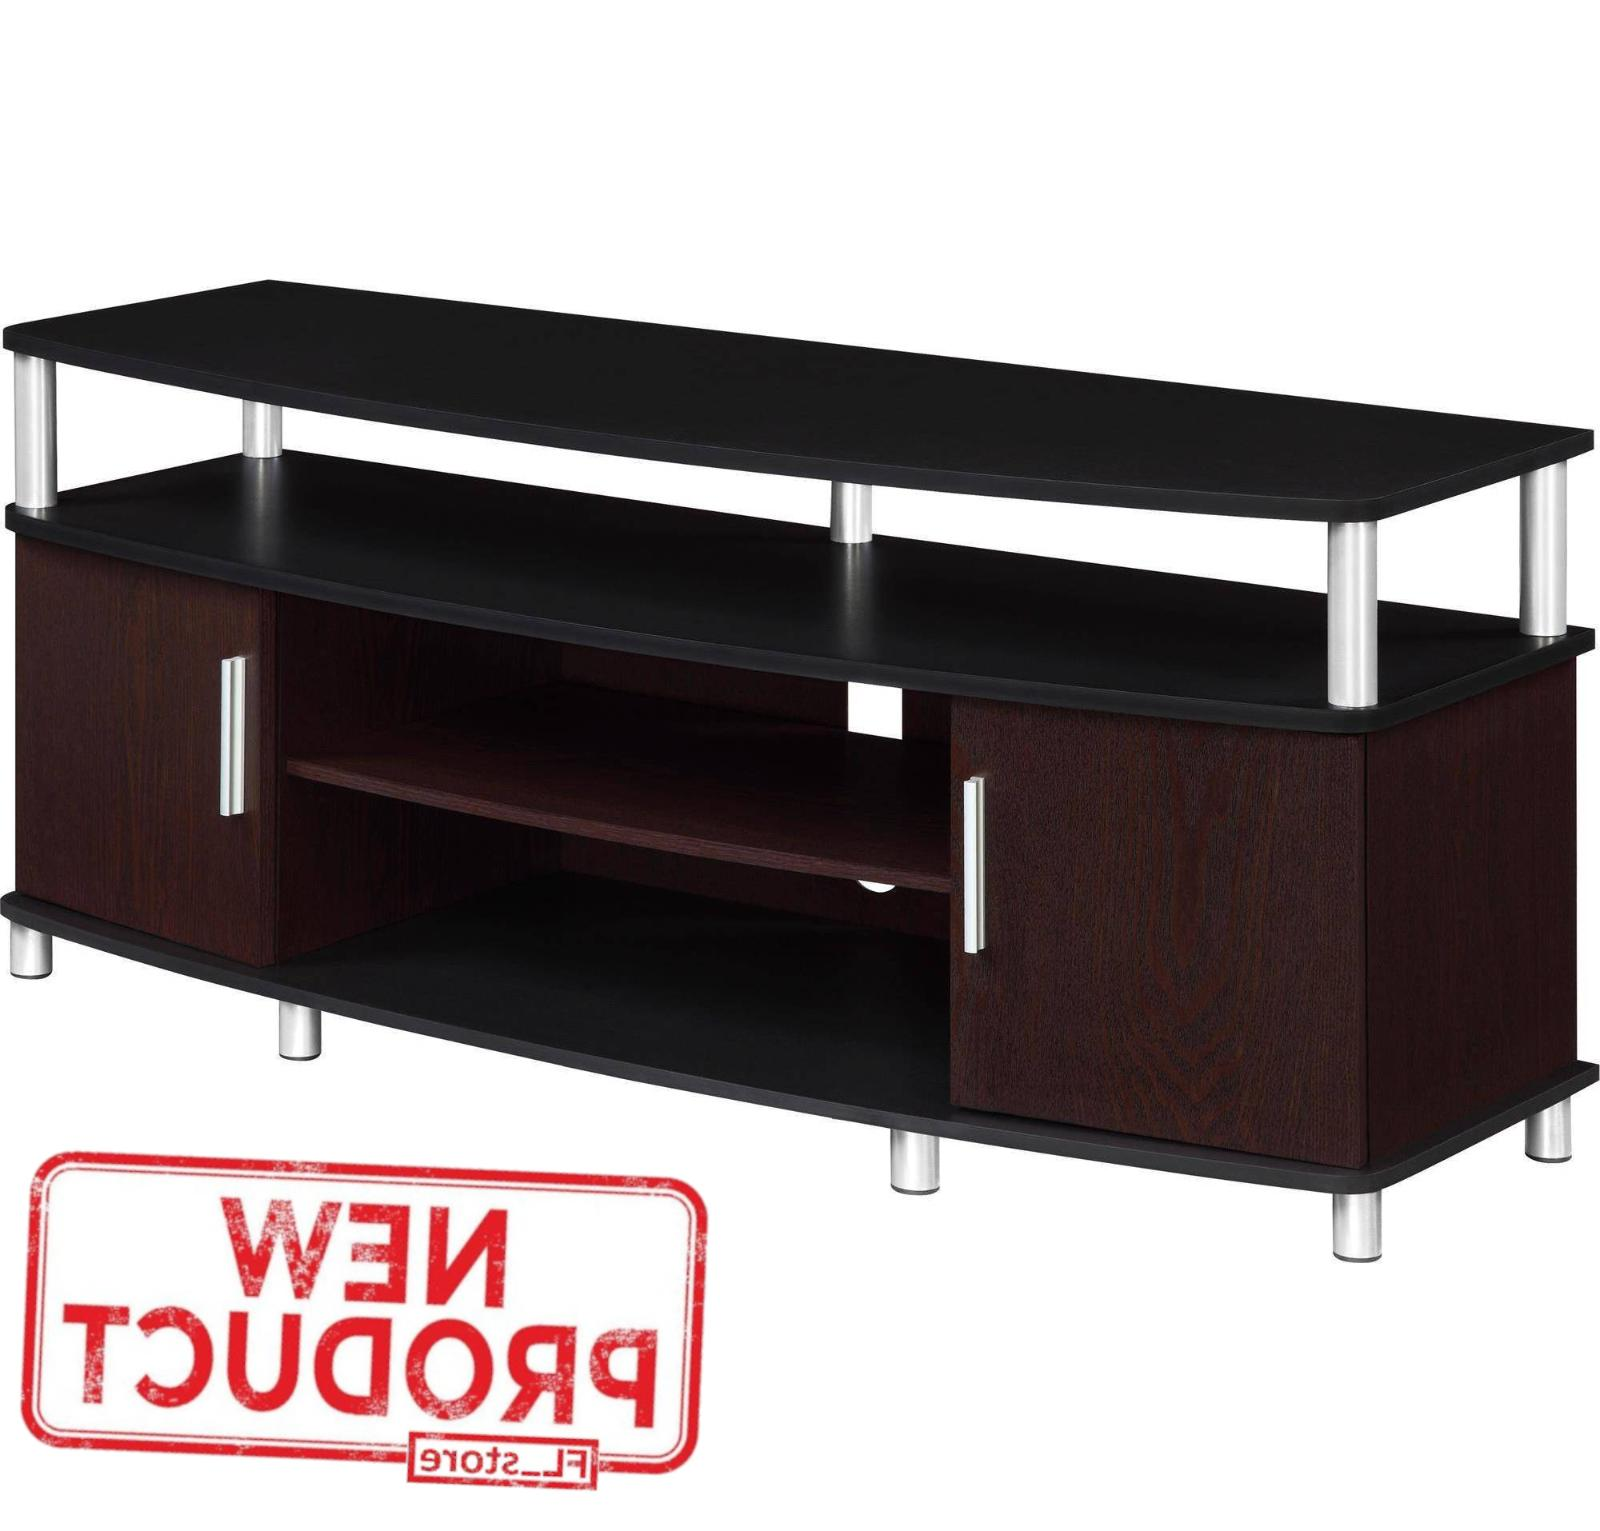 50 tv stand storage cabinet entertainment home